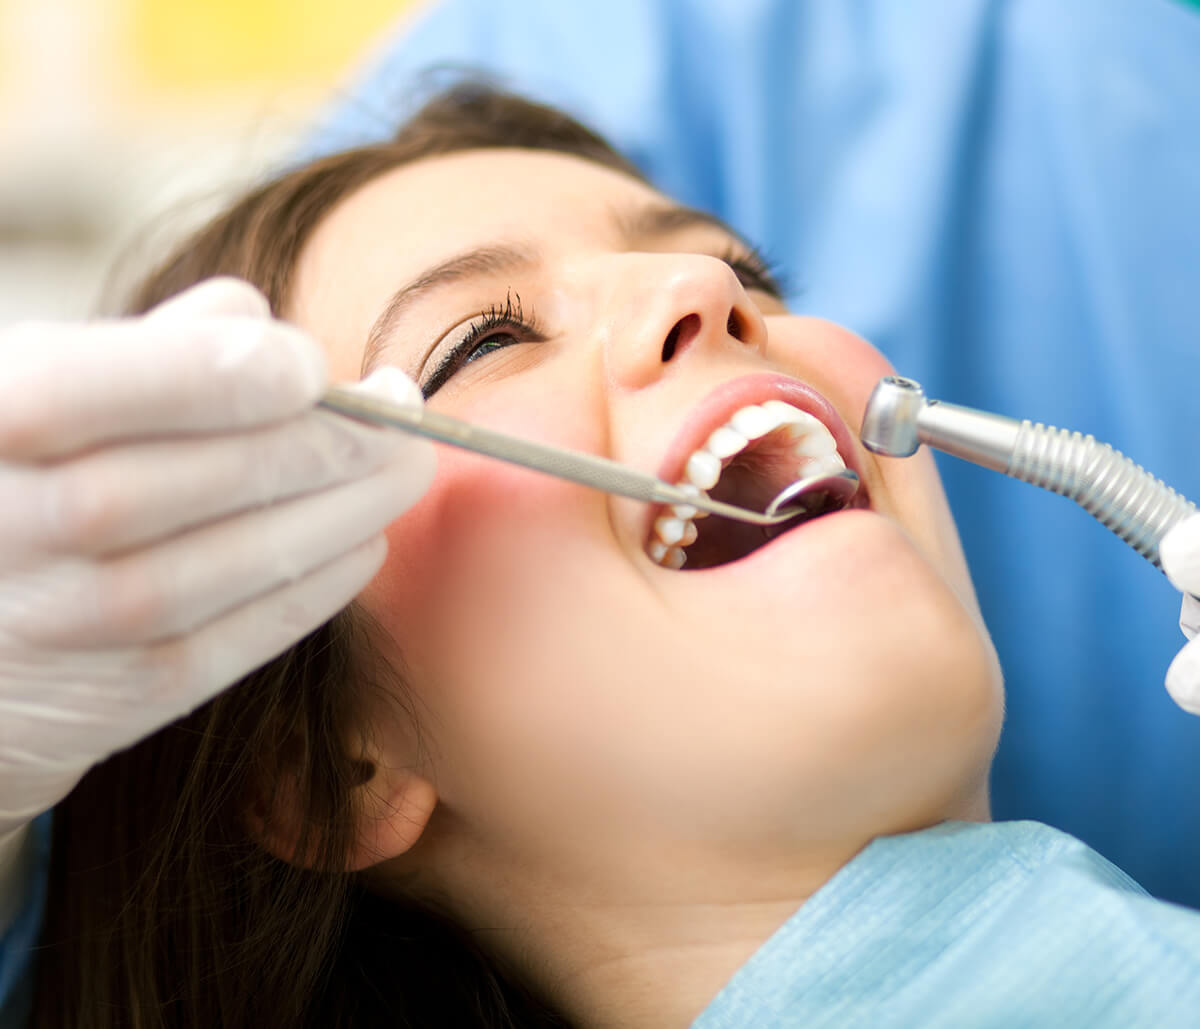 Laser Dental Services at Stephen J Matarazzo DMD office Quincy Area